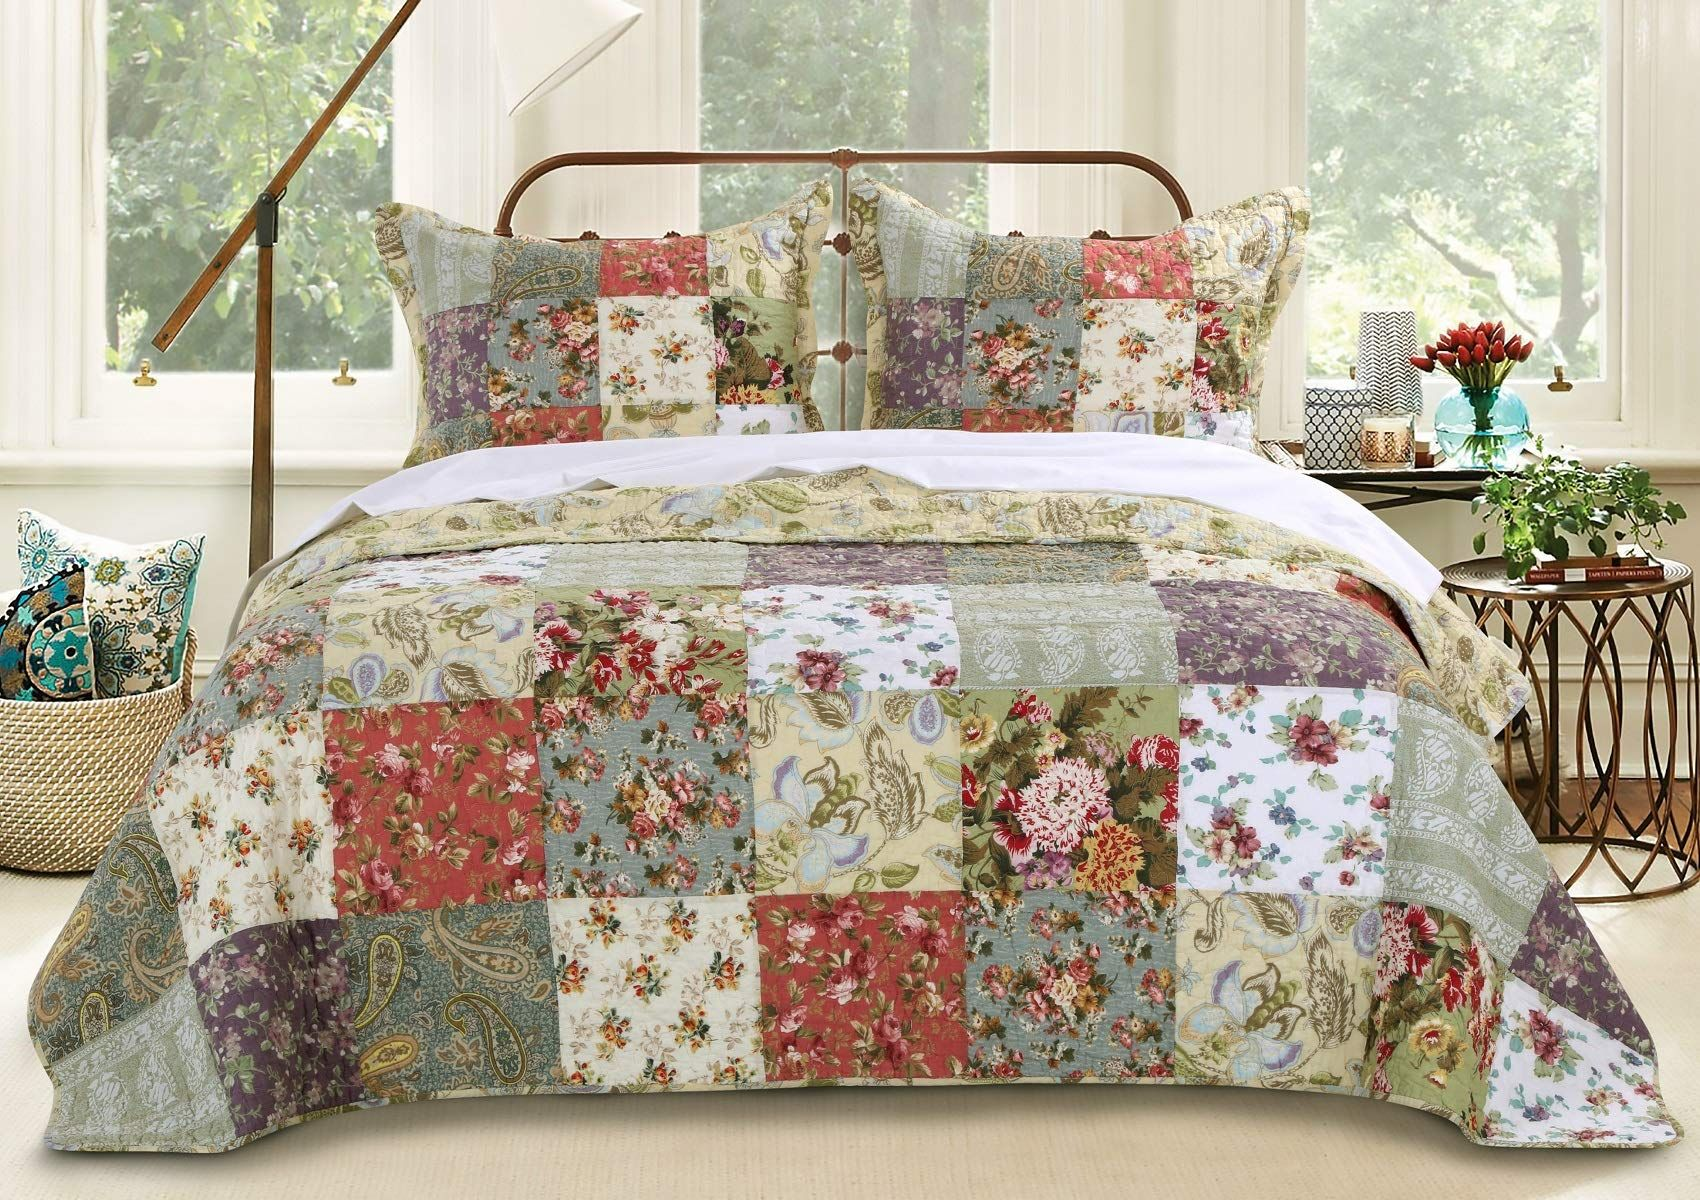 2 Piece Quilt Set Greenland Home Fashions Blooming Prairie